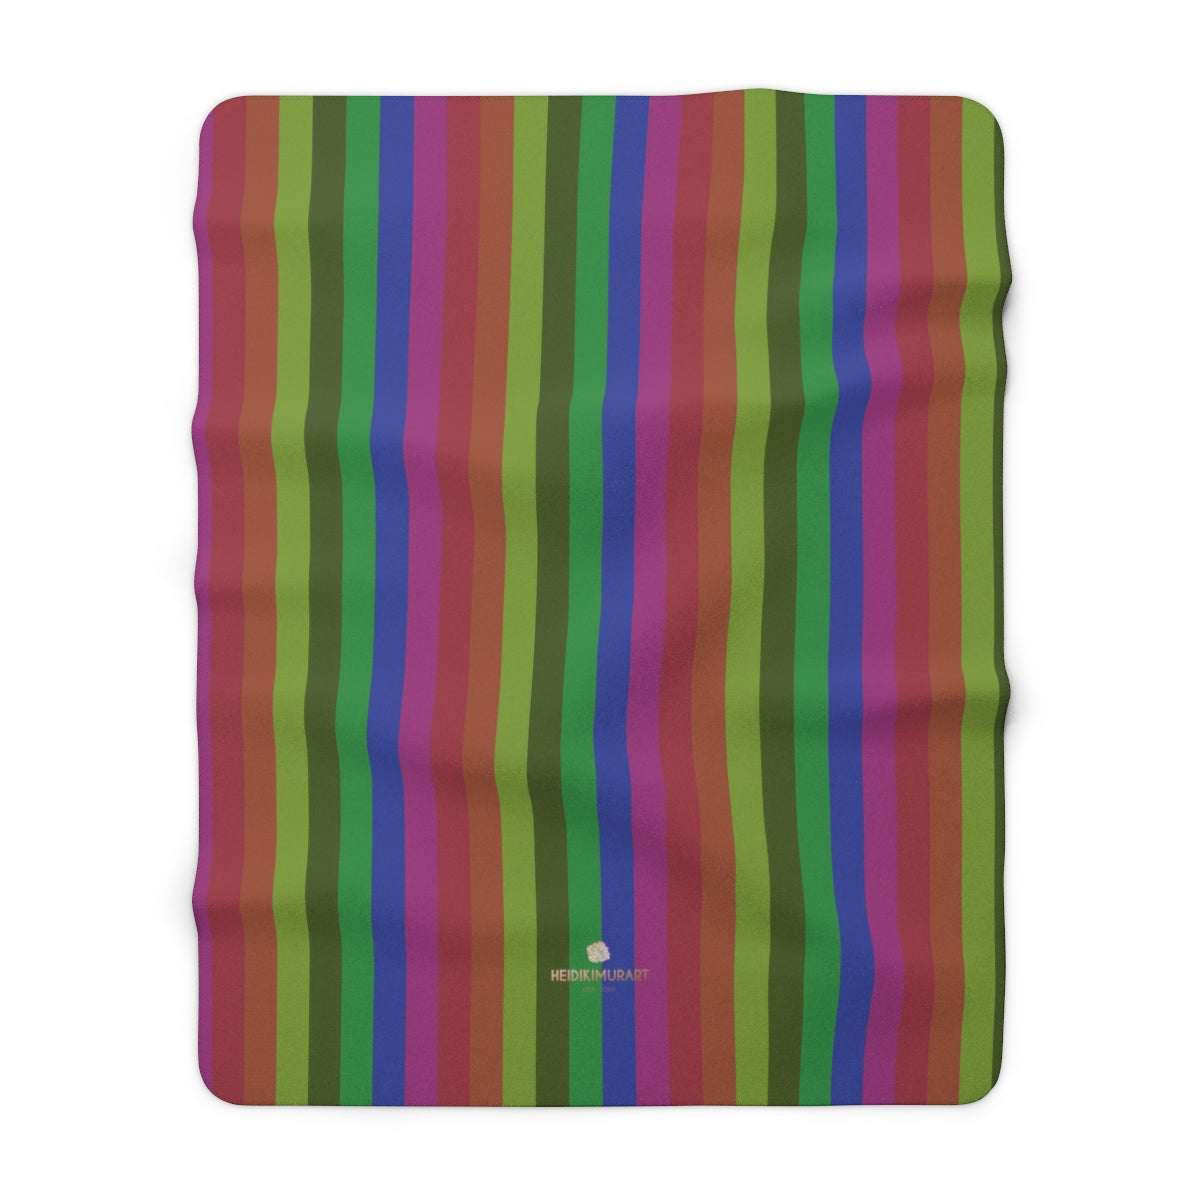 "Vintage Gay Pride Rainbow Striped Print Cozy Sherpa Fleece Blanket-Made in USA-Blanket-60"" x 80""-Heidi Kimura Art LLC"